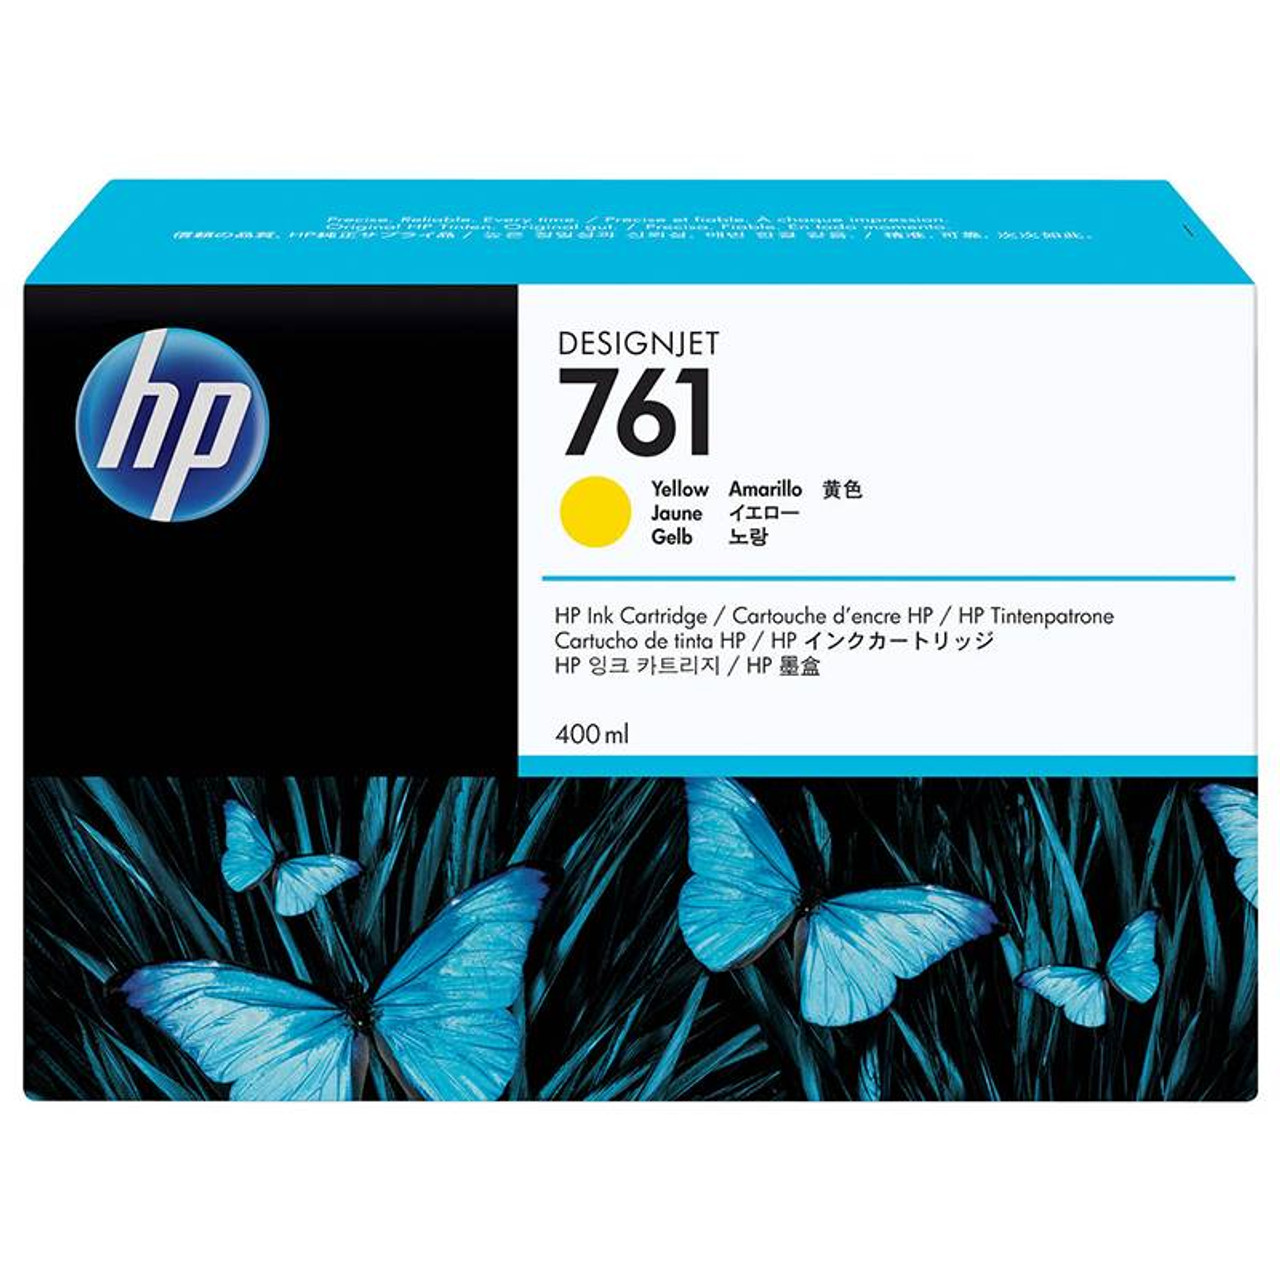 Image for HP761 400ML DesignJet Ink Cartridge - Yellow (CM992A) CX Computer Superstore